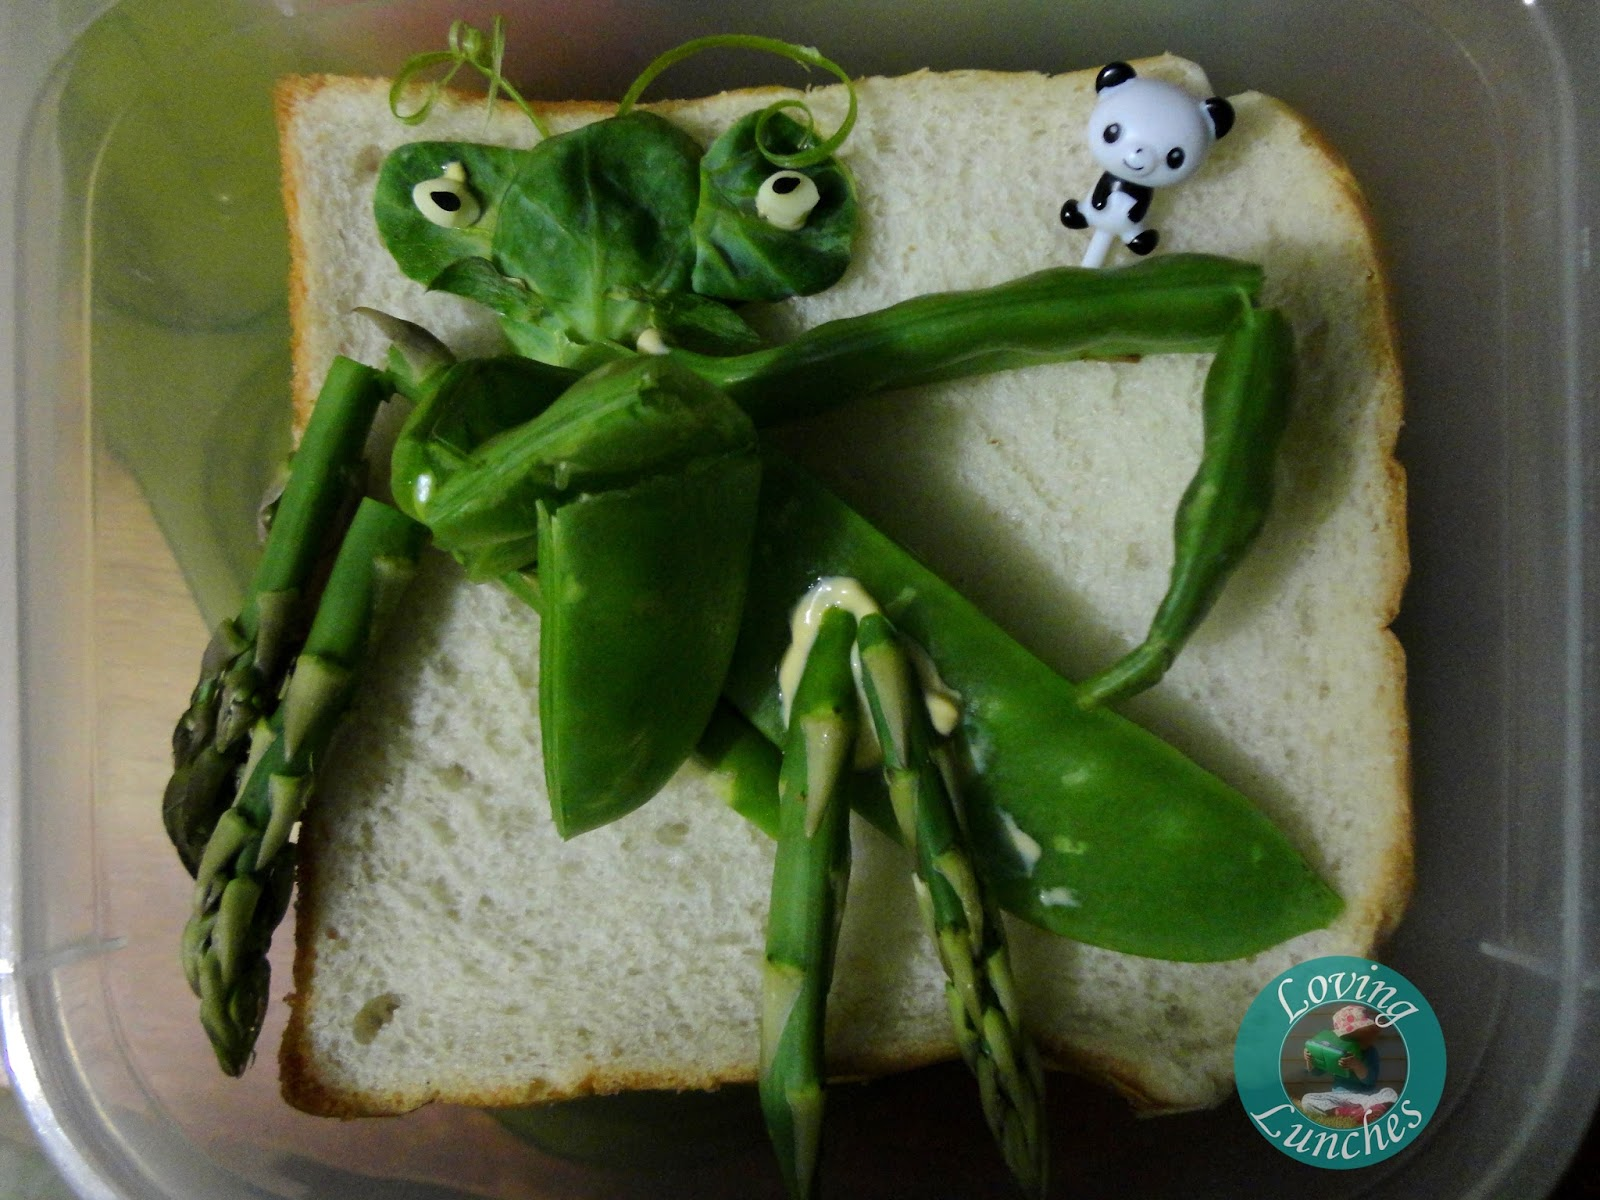 Loving Lunches: Kung Fu Panda Lunches of Awesomeness Mantis